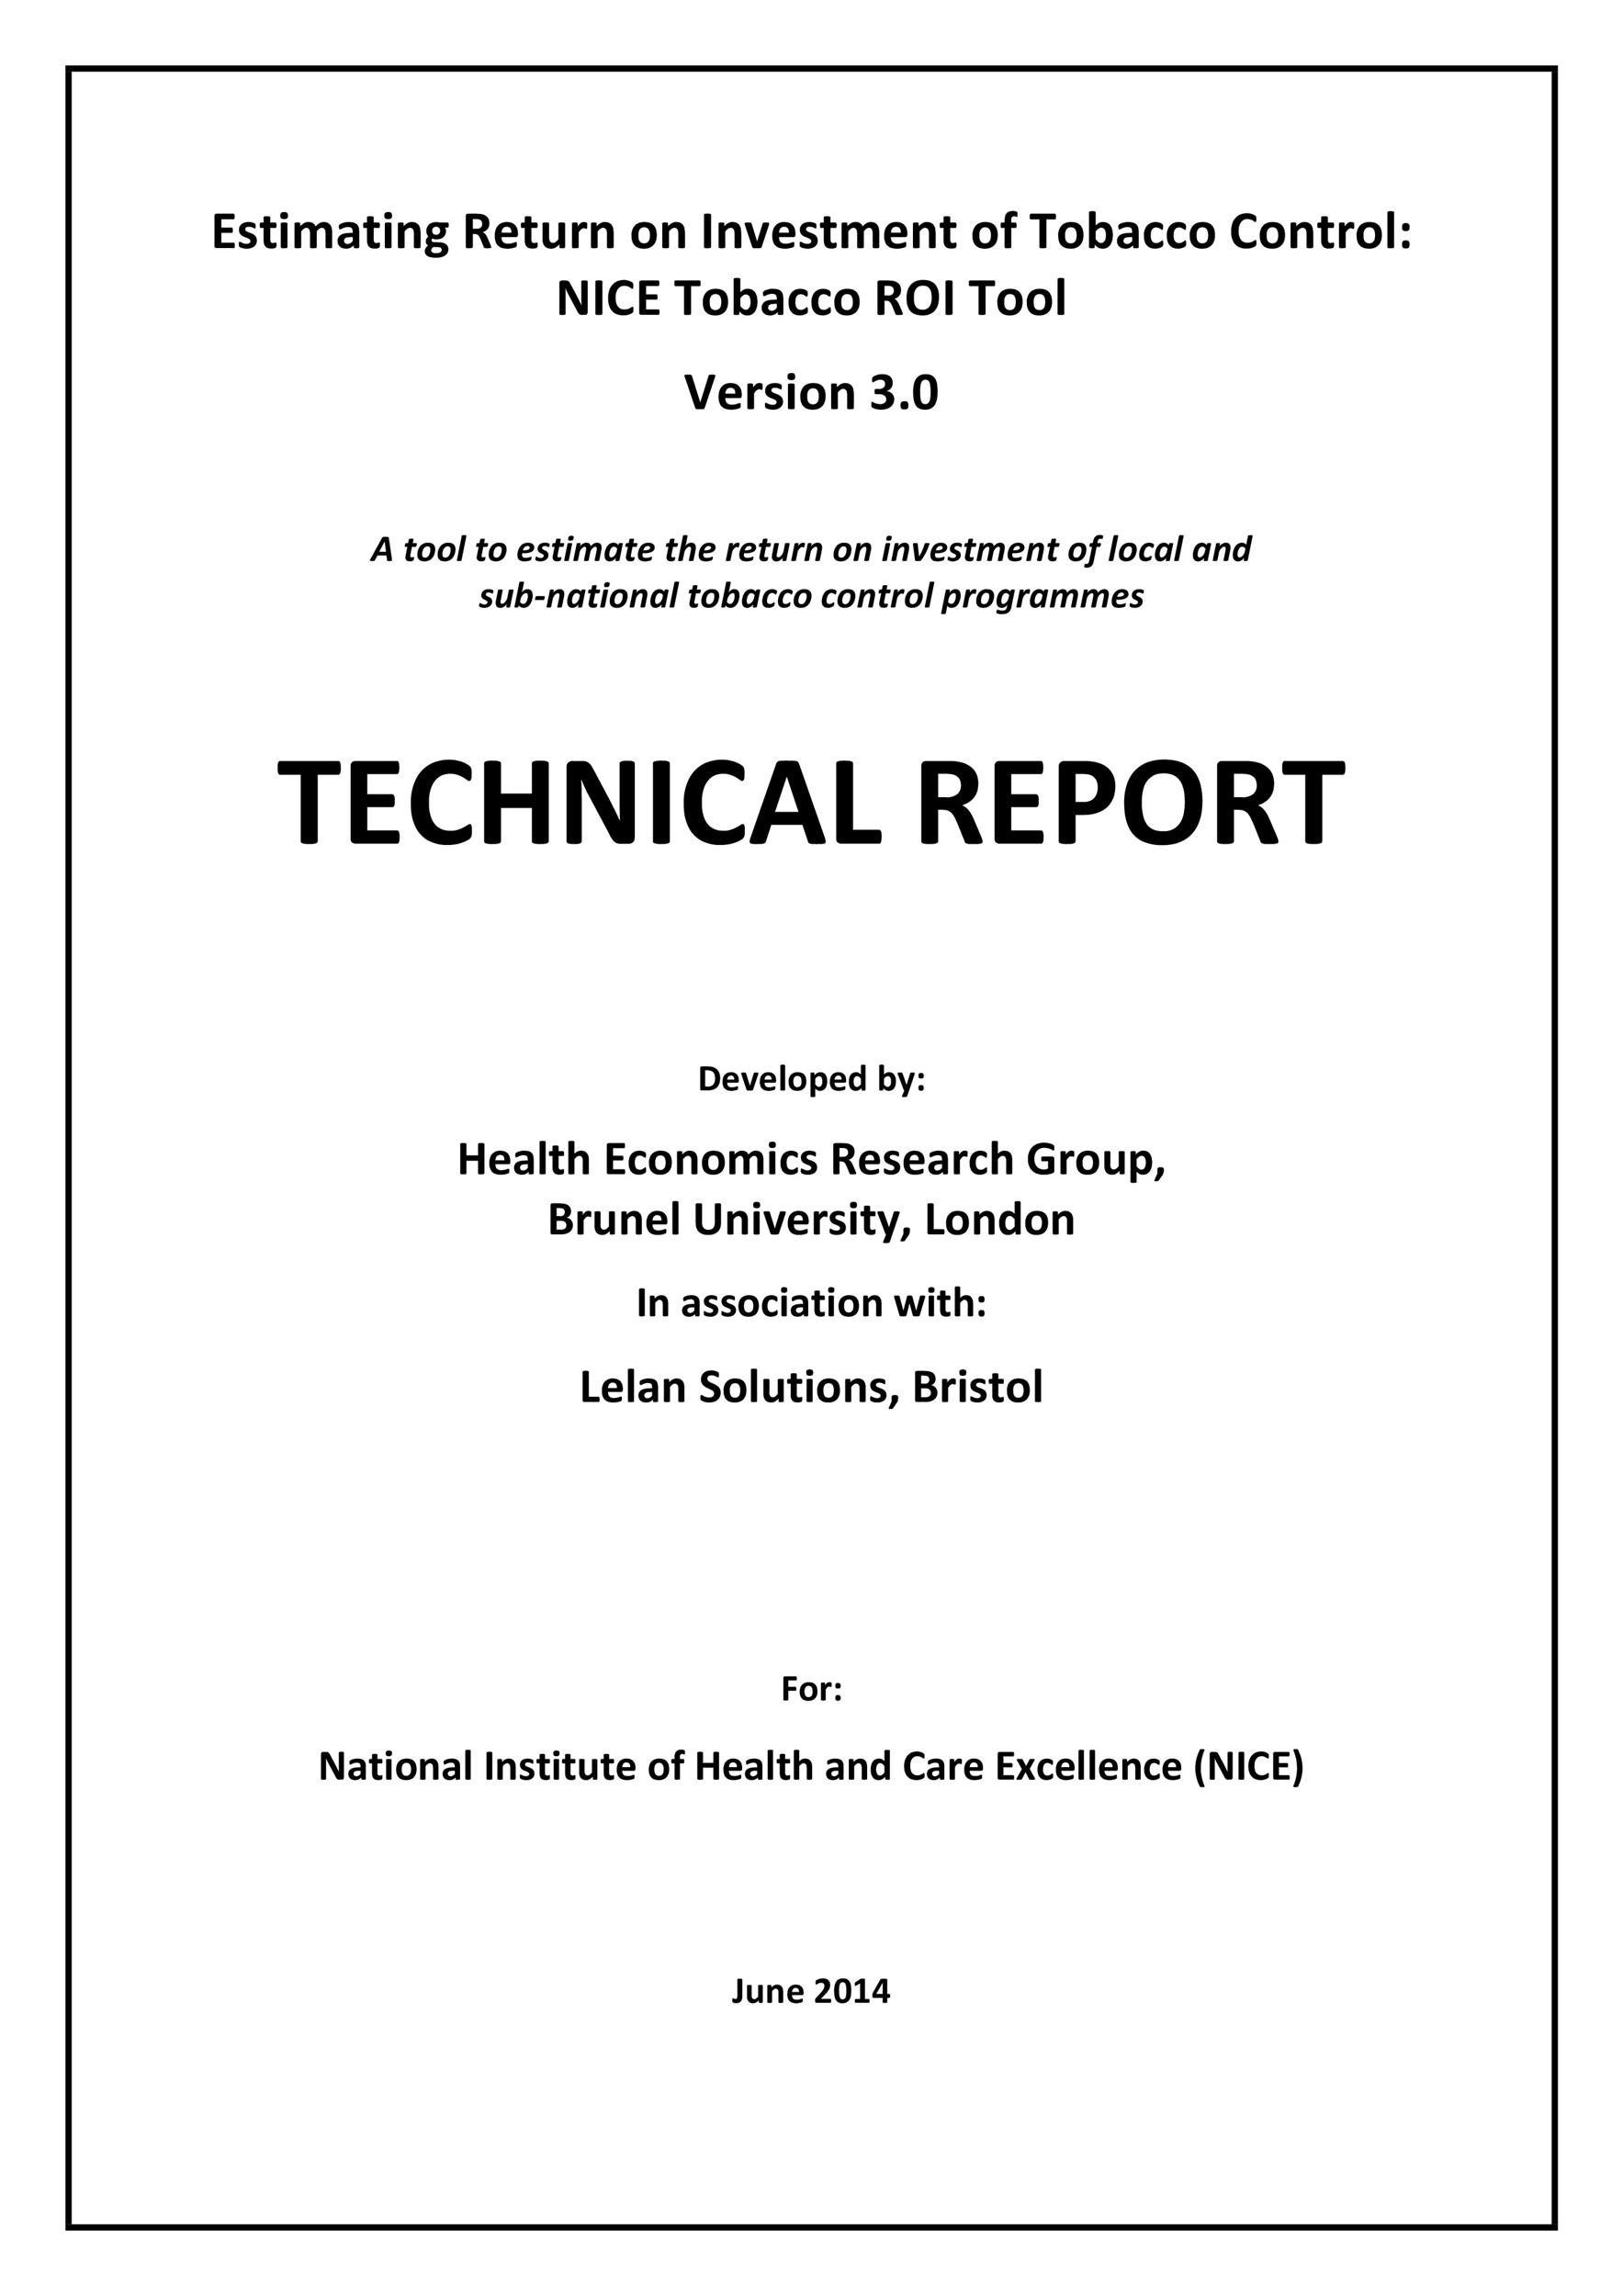 Free technical report template 17